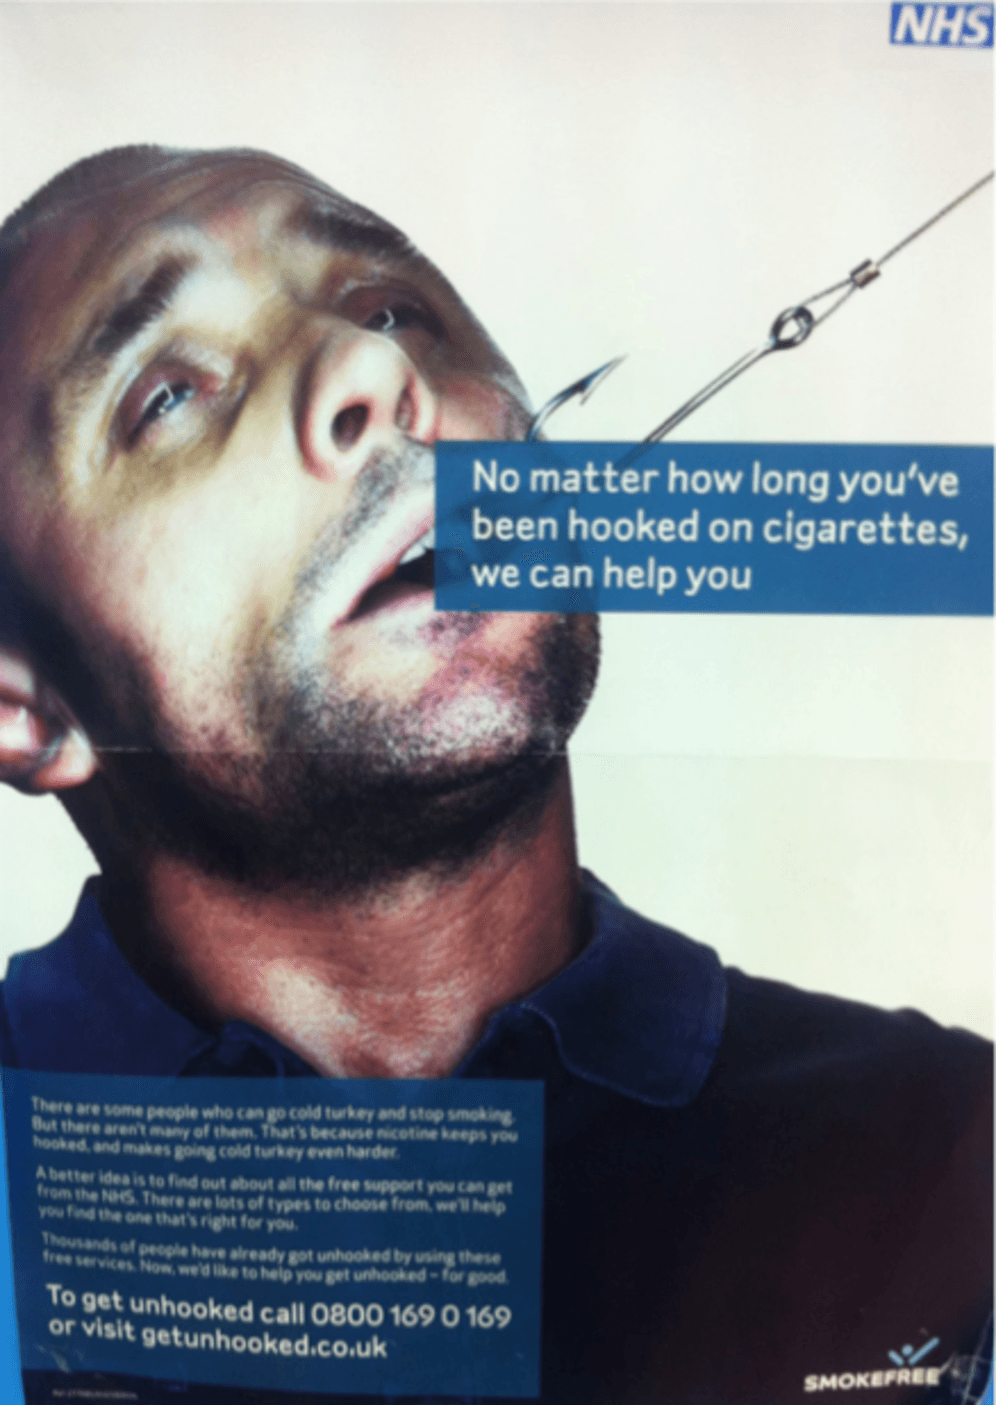 20 myths about smoking that will not die | Blog - Tobacco Control